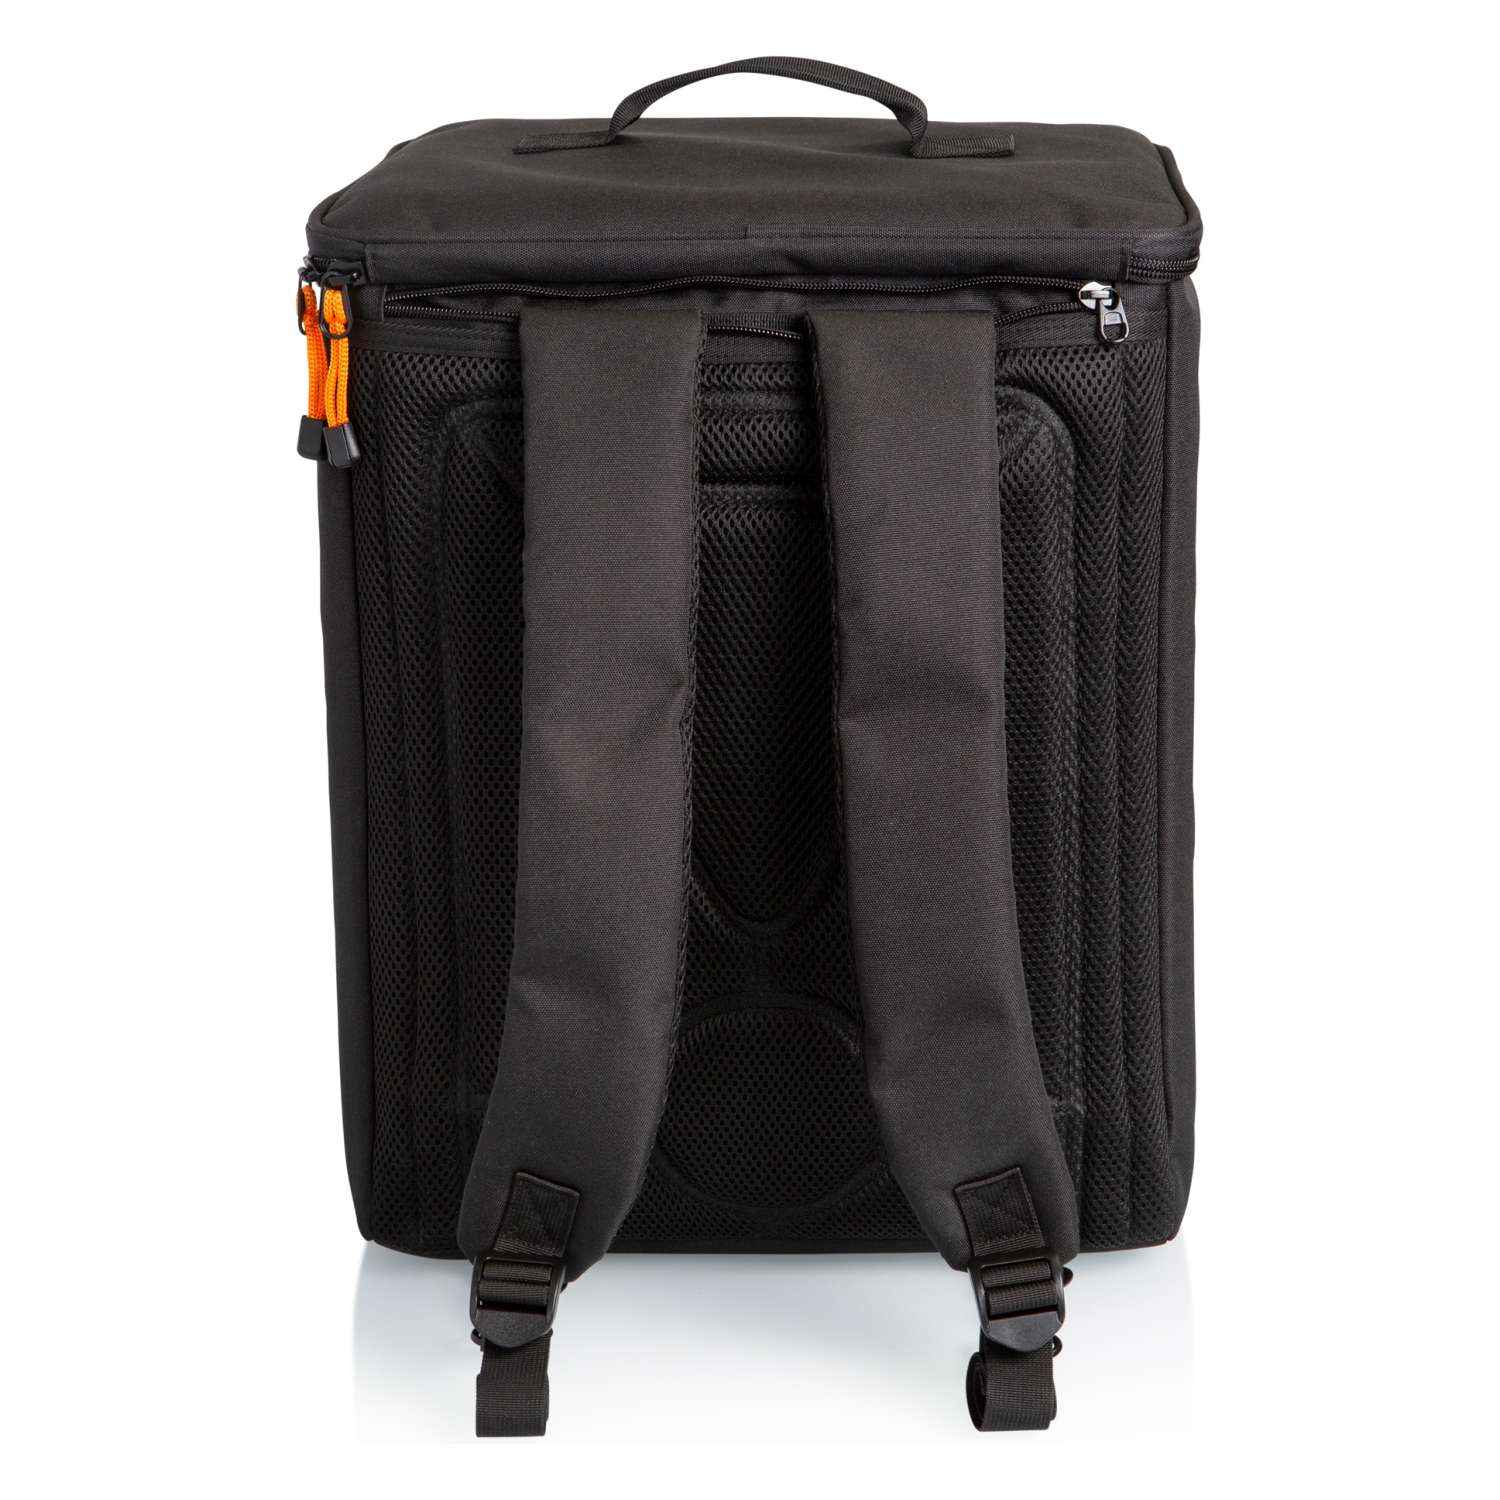 JBL EON One Compact with Backpack 10